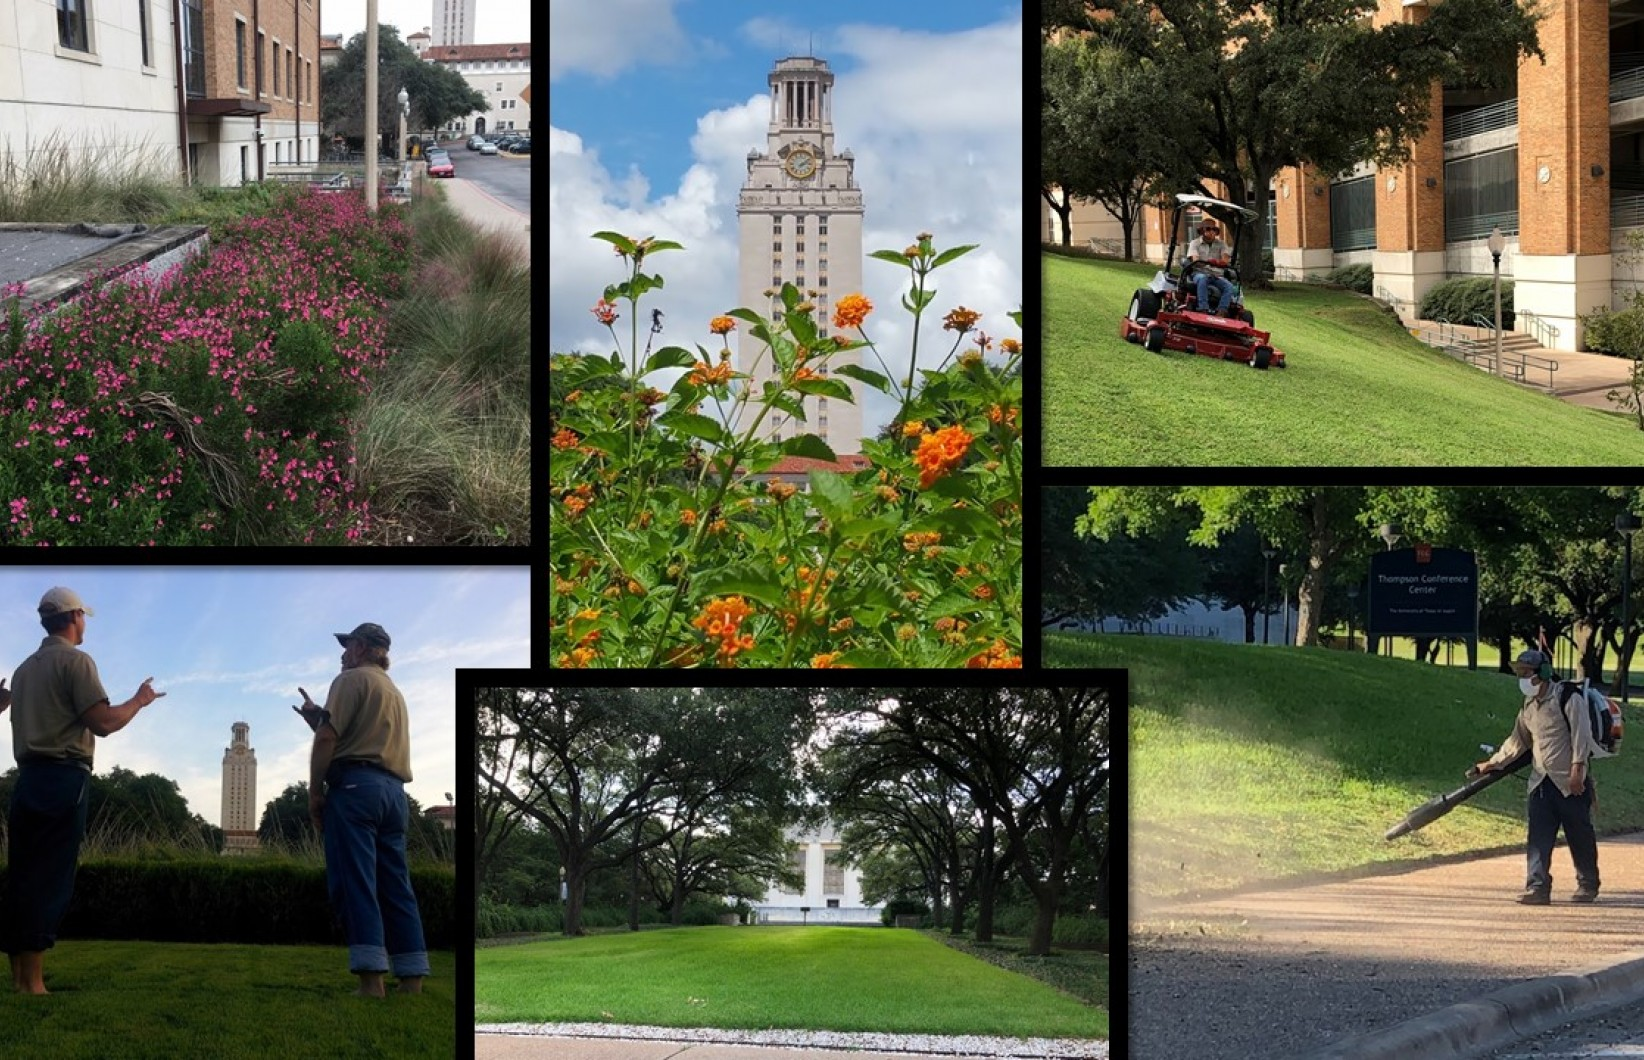 Image collage of the landscape on Main Campus